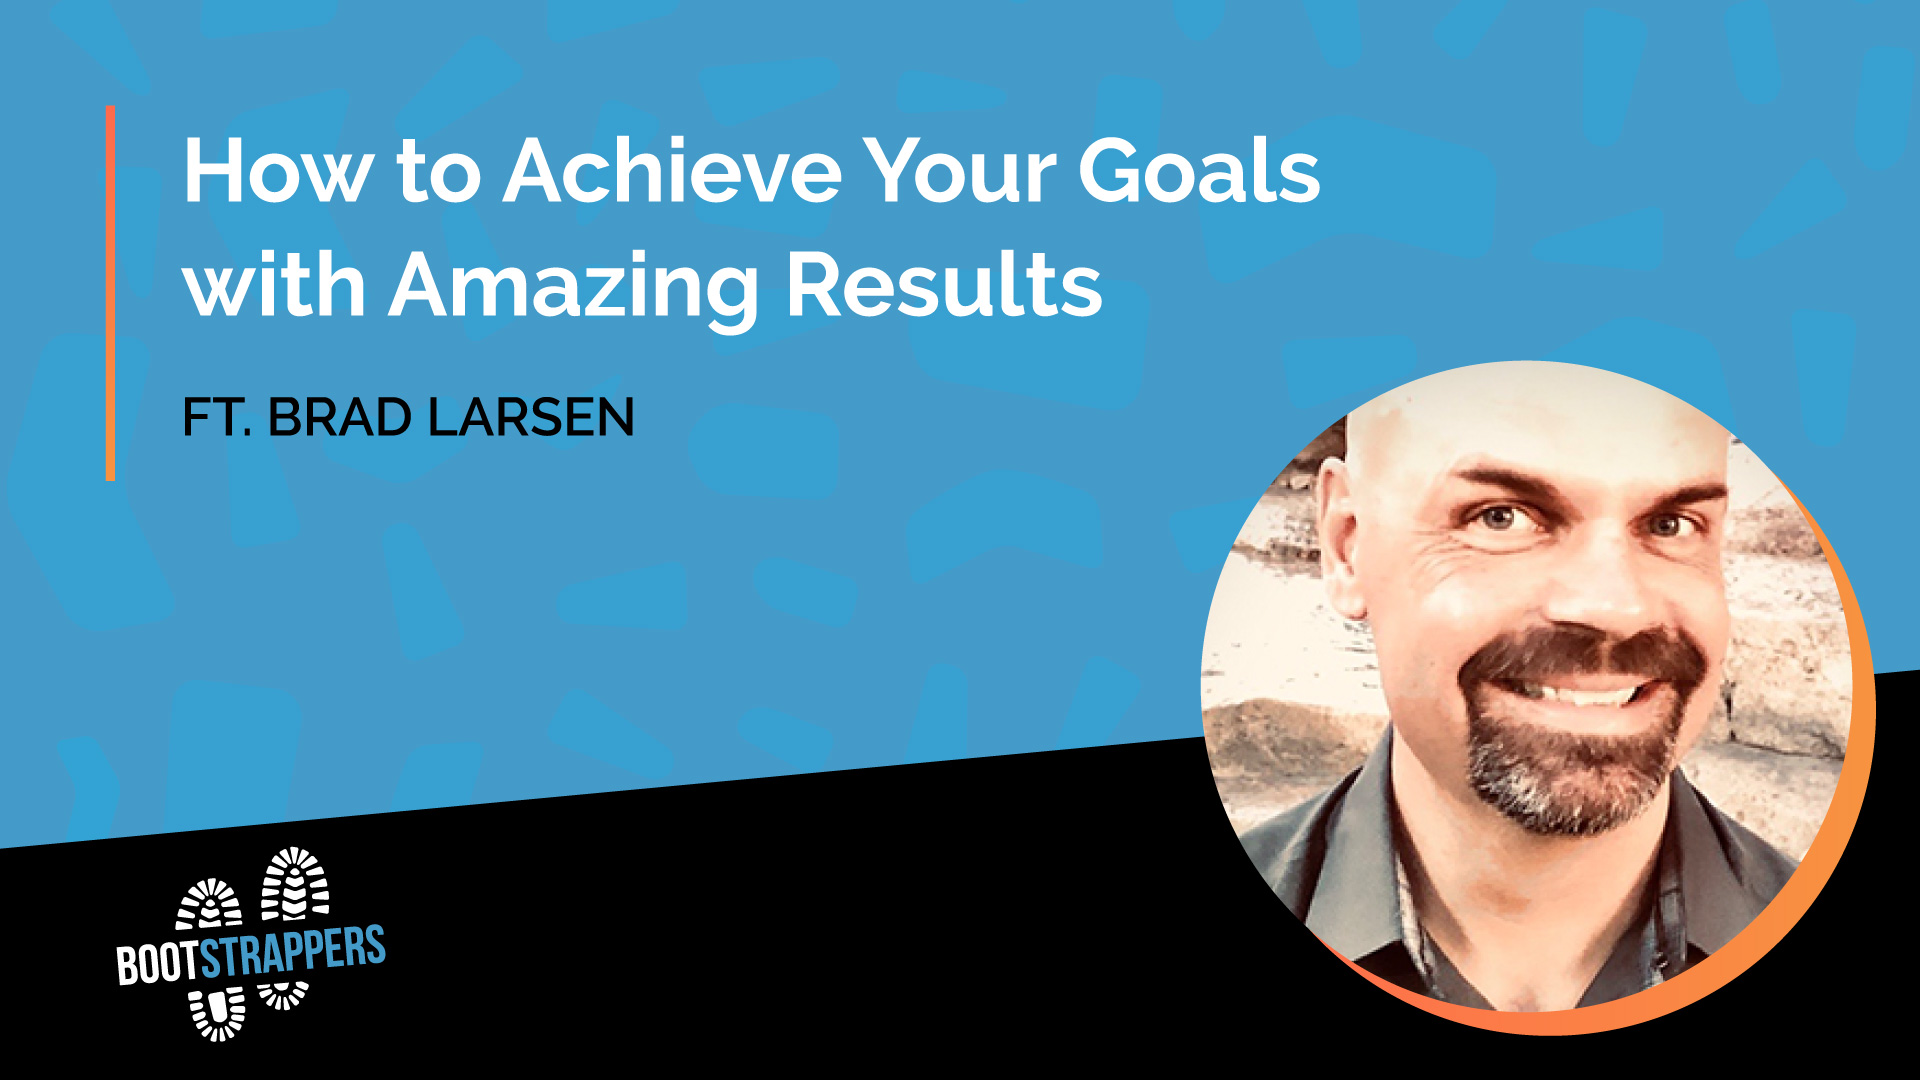 anequim-bootstrappers-how-to-achieve-your-goals-brad-larsen